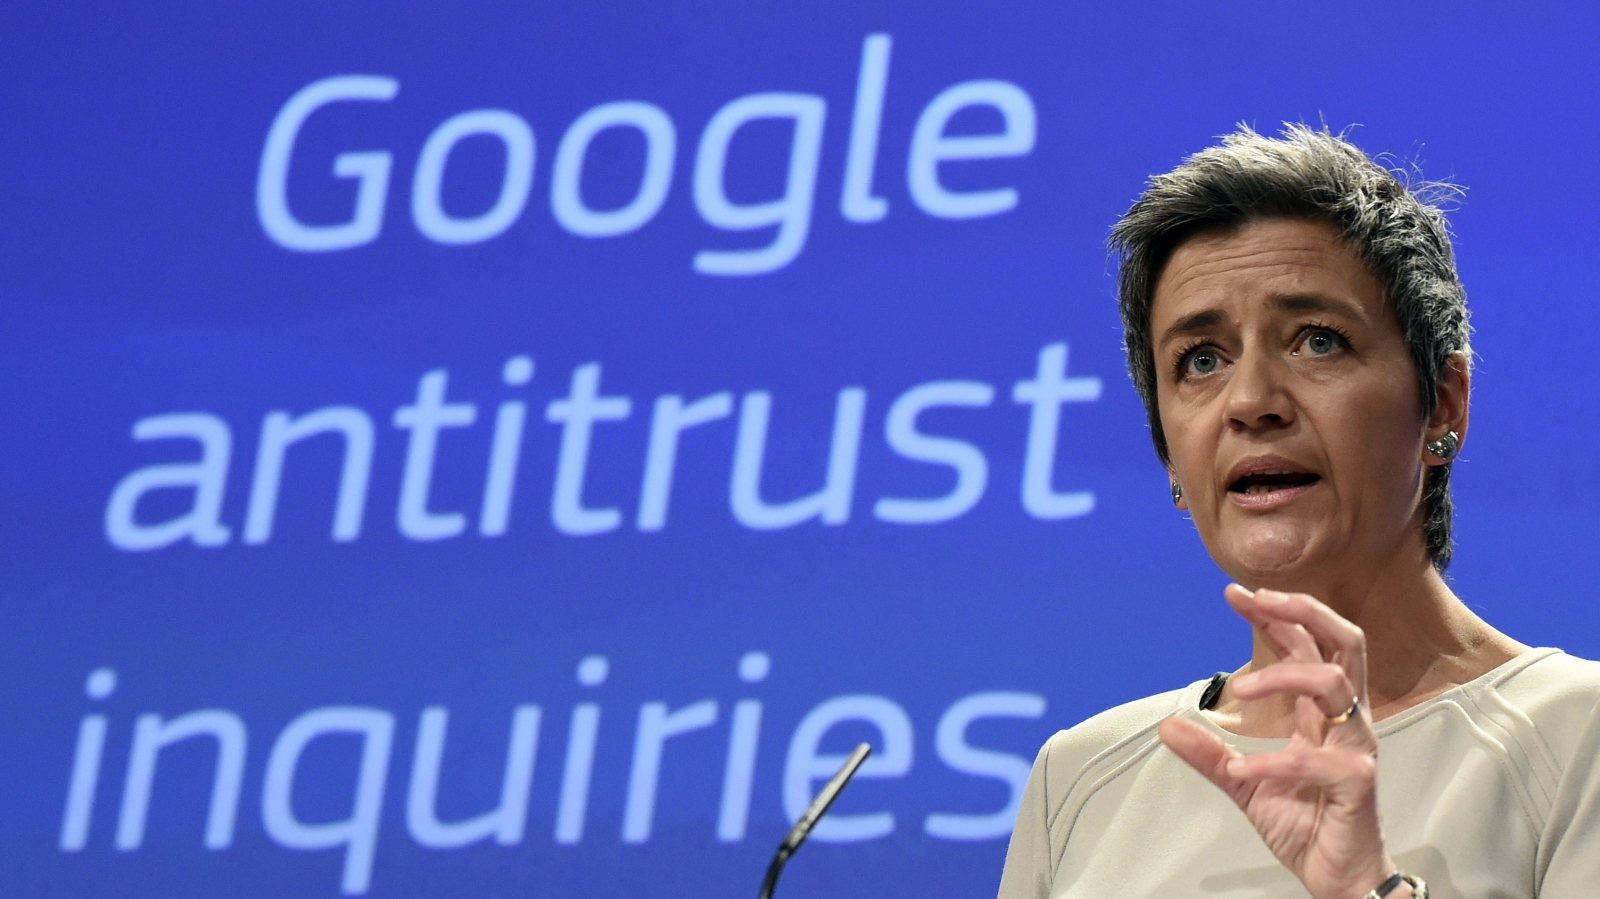 EU to stop Google's anti-competitive practices